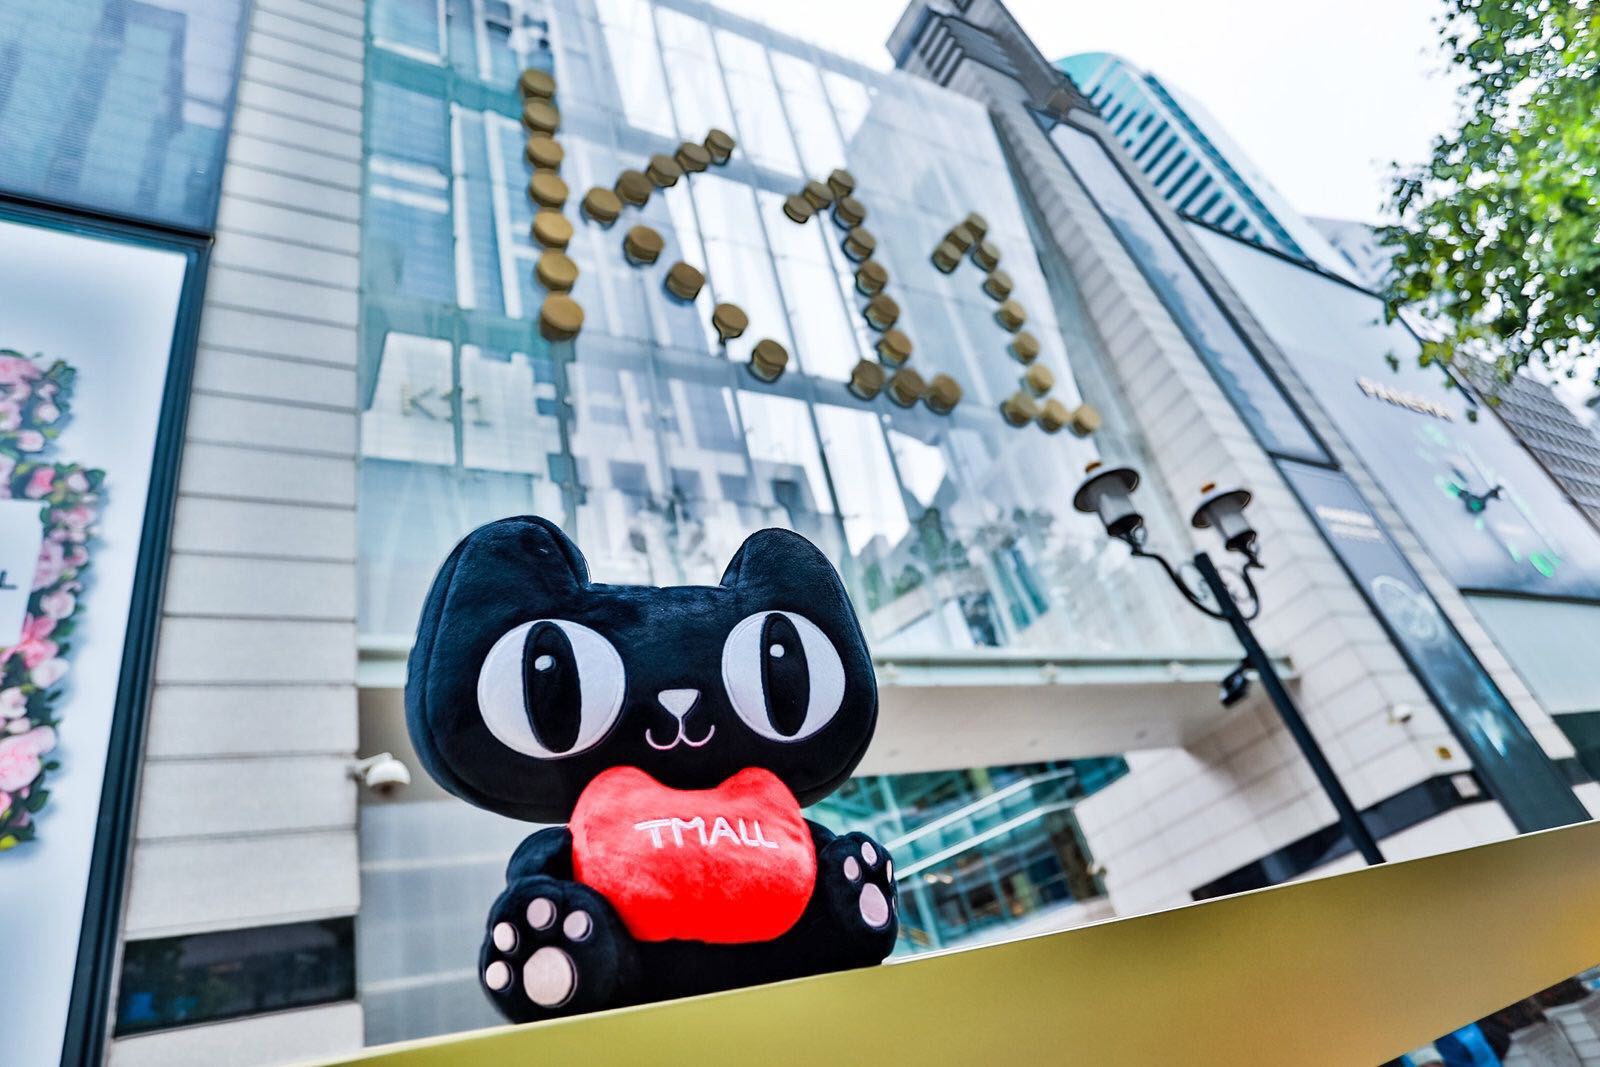 Entering the offline world: Tmall opens its first experience center